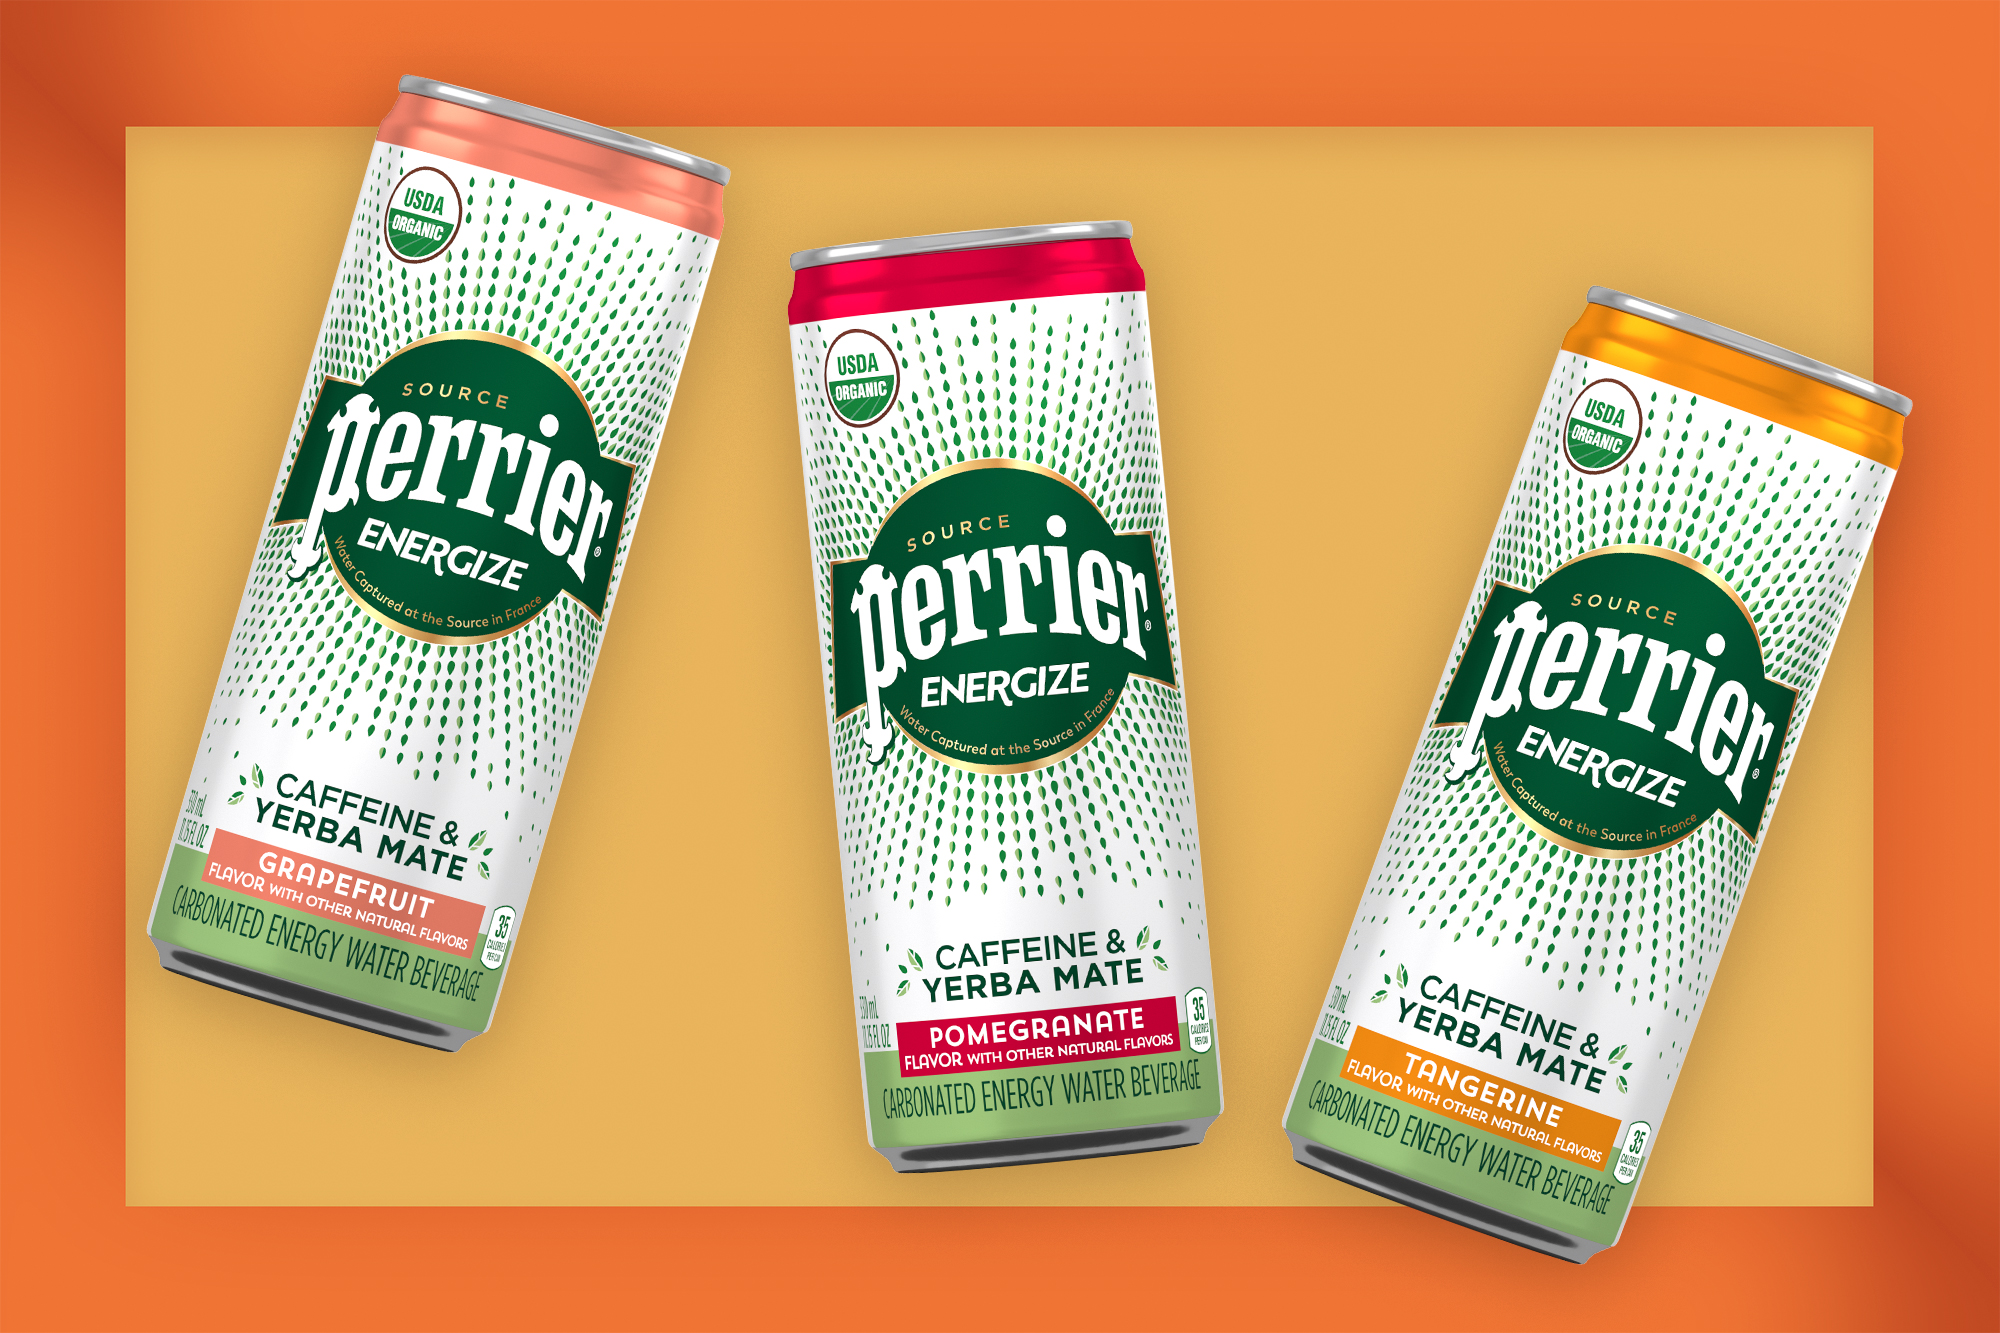 Perrier Energize cans